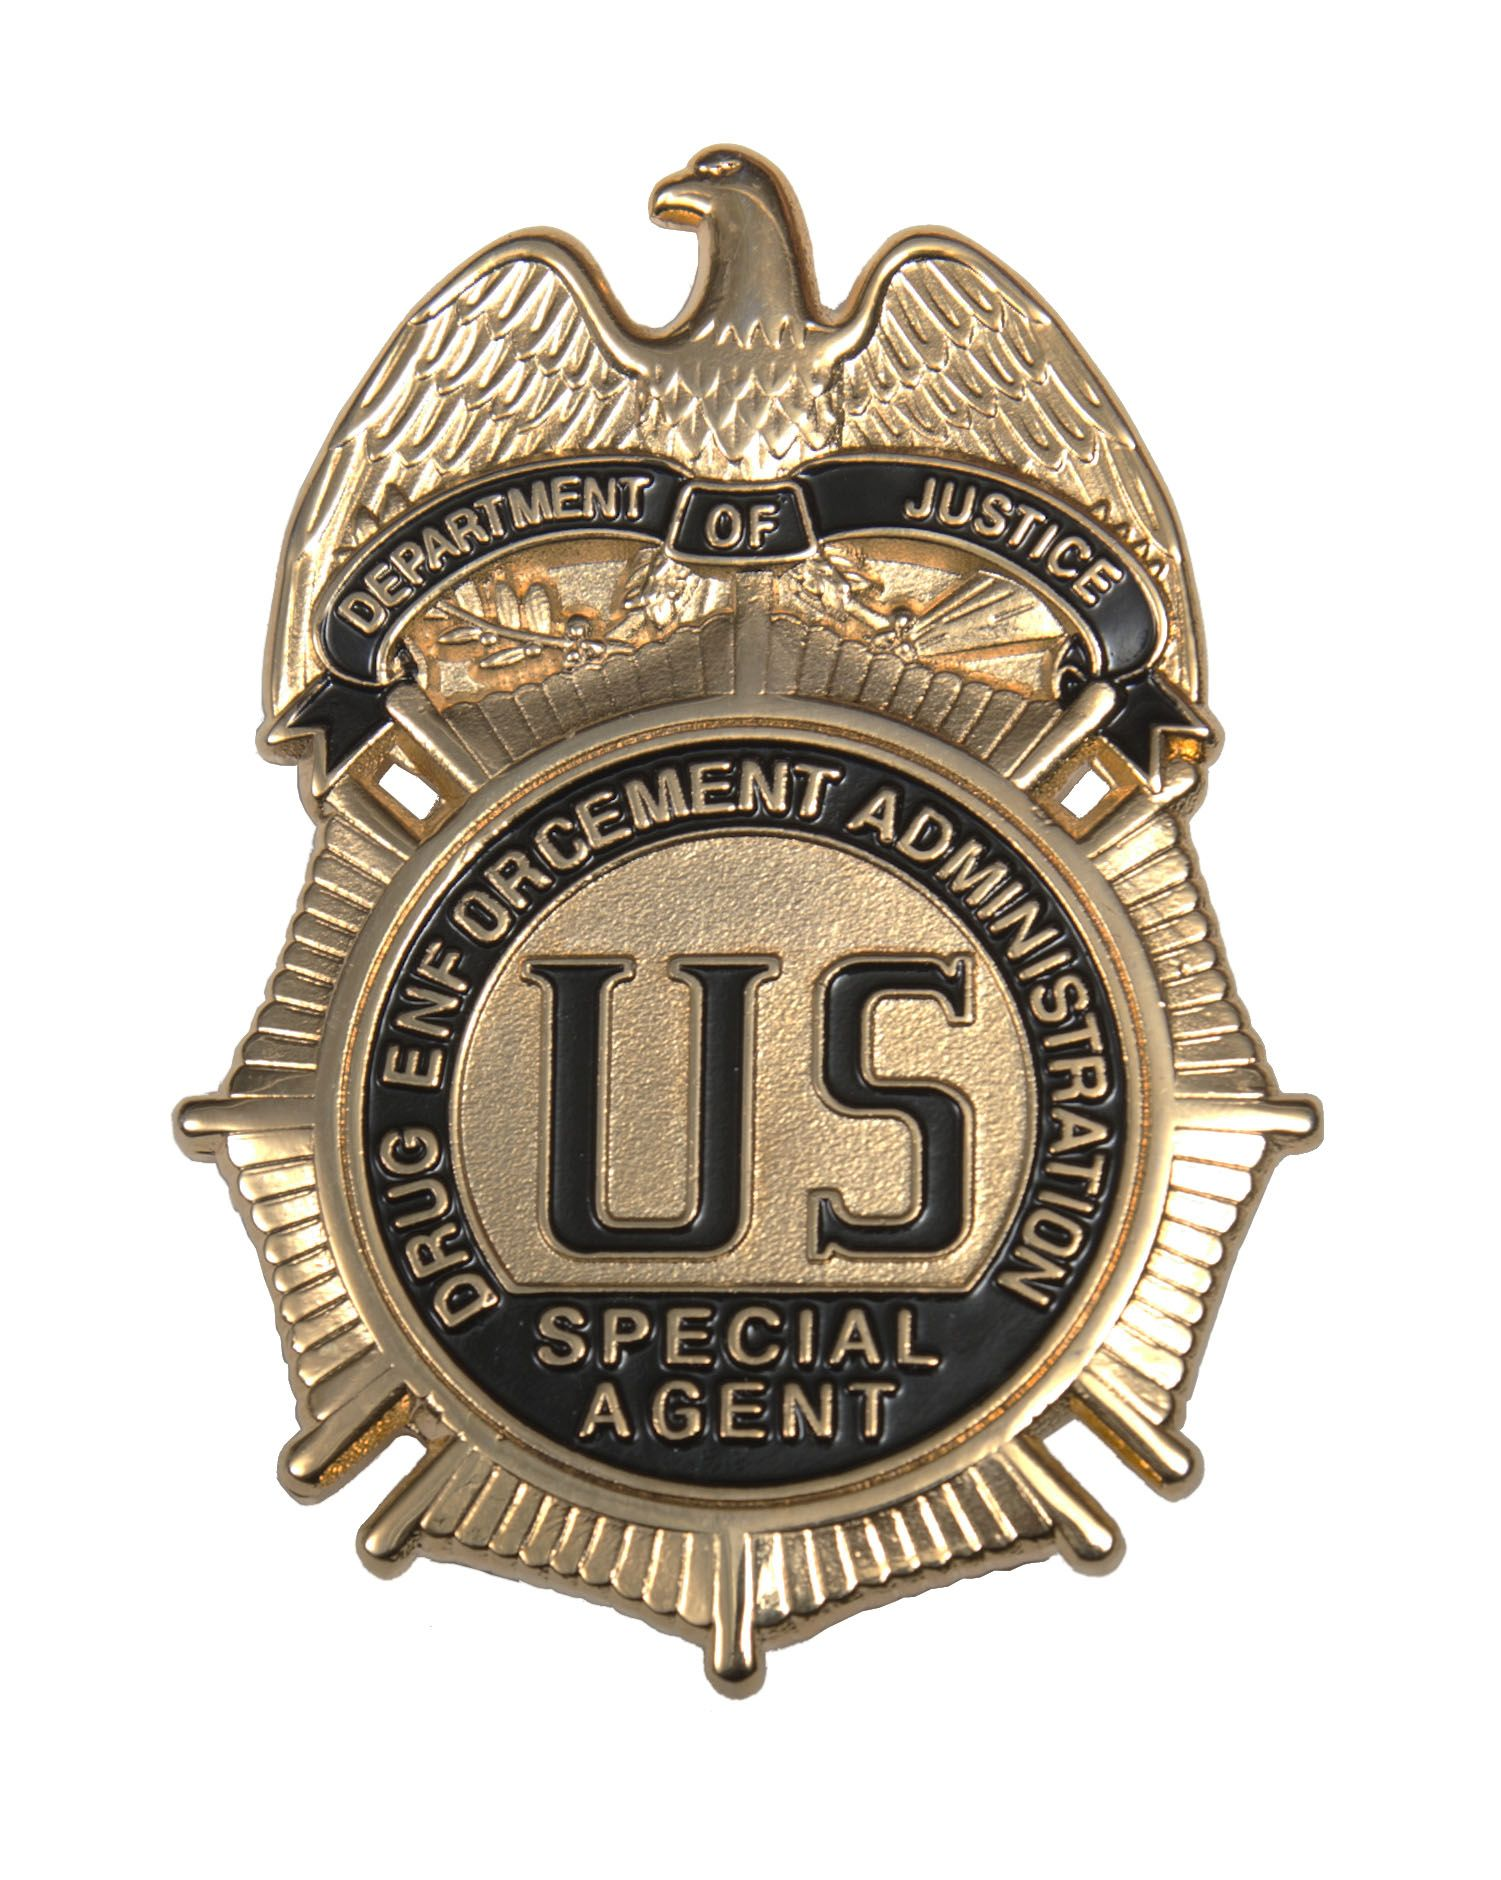 dea badge the specialists ltd the specialists ltd weapon